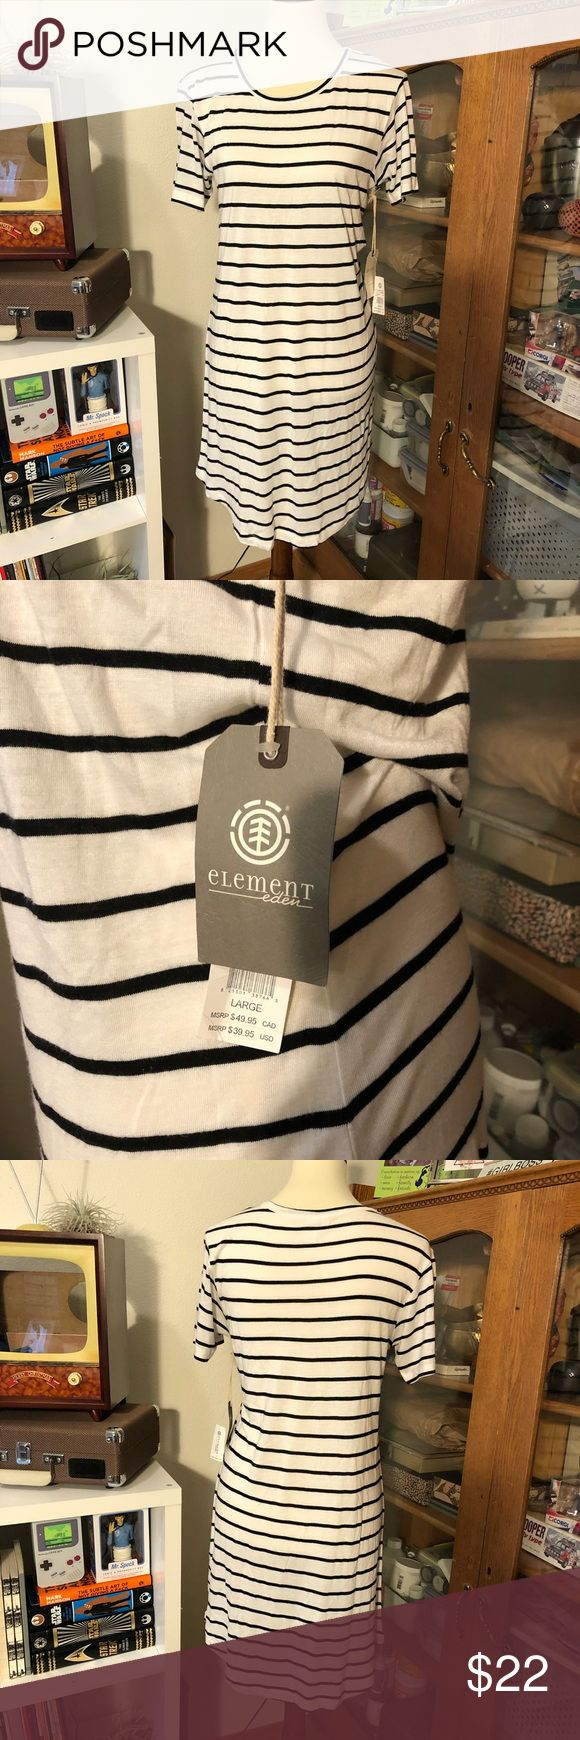 Element Eden nautical dress NWT ⛵️ Element Eden striped dress Large Super soft silky material Perfect for the weekends!  NWT  Bundle and save, goodies with purchase Element Dresses